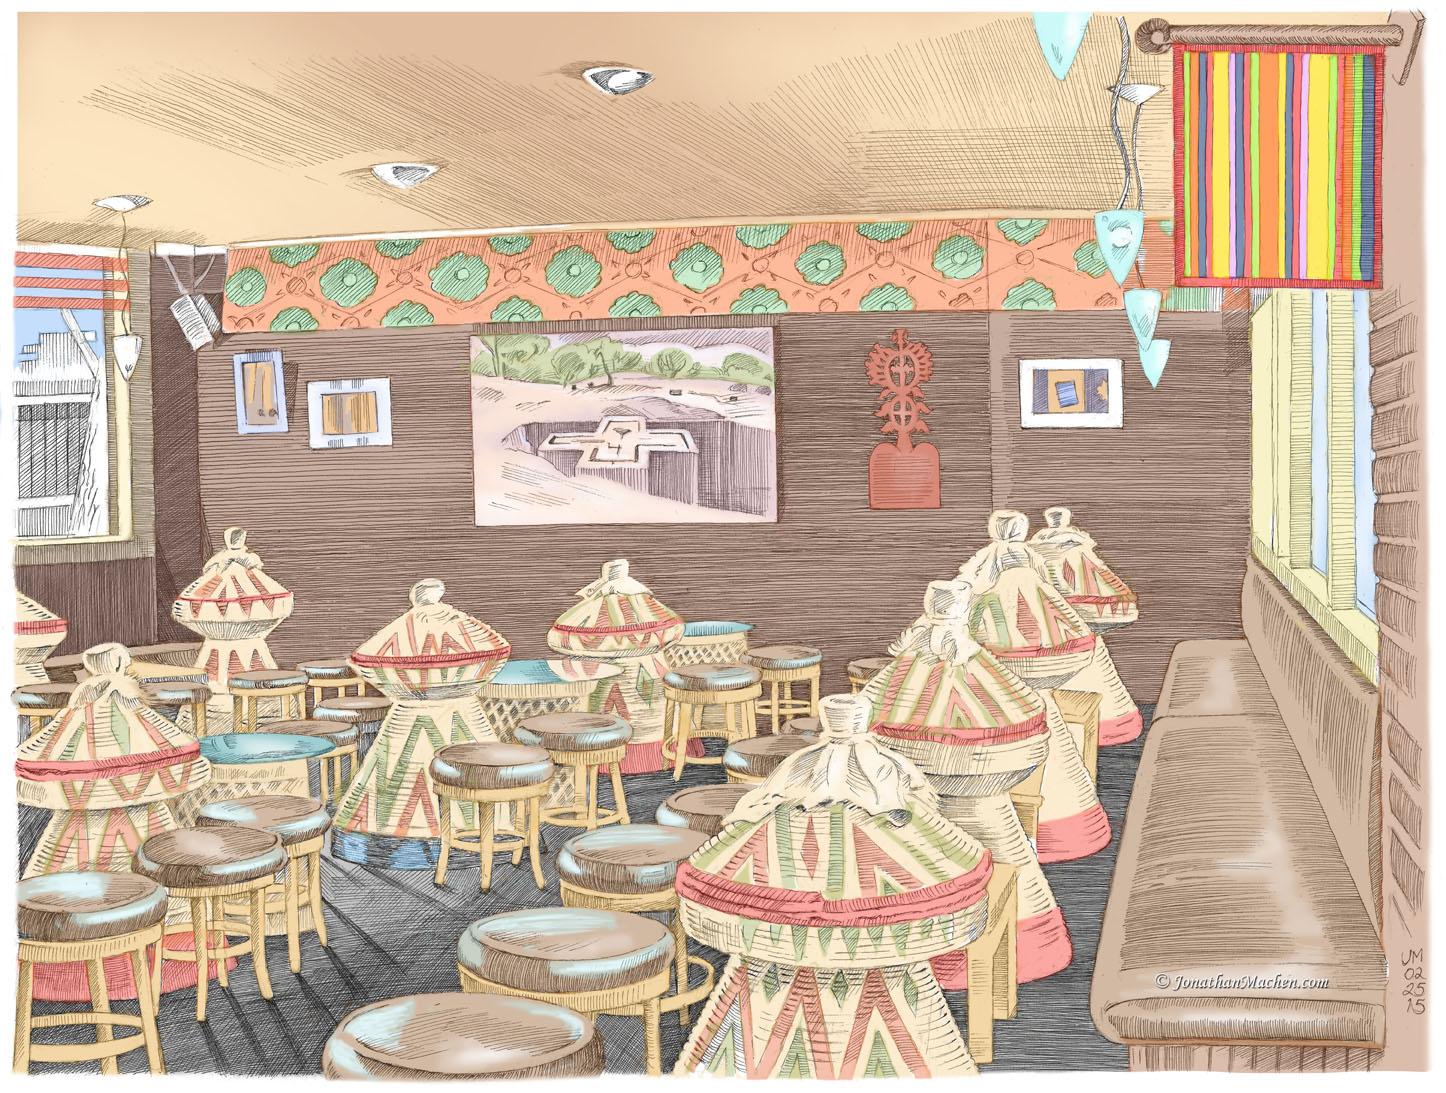 pen-and-ink drawing with digital color by Jonathan Machen, Ras Kassas Restaurant, Boulder